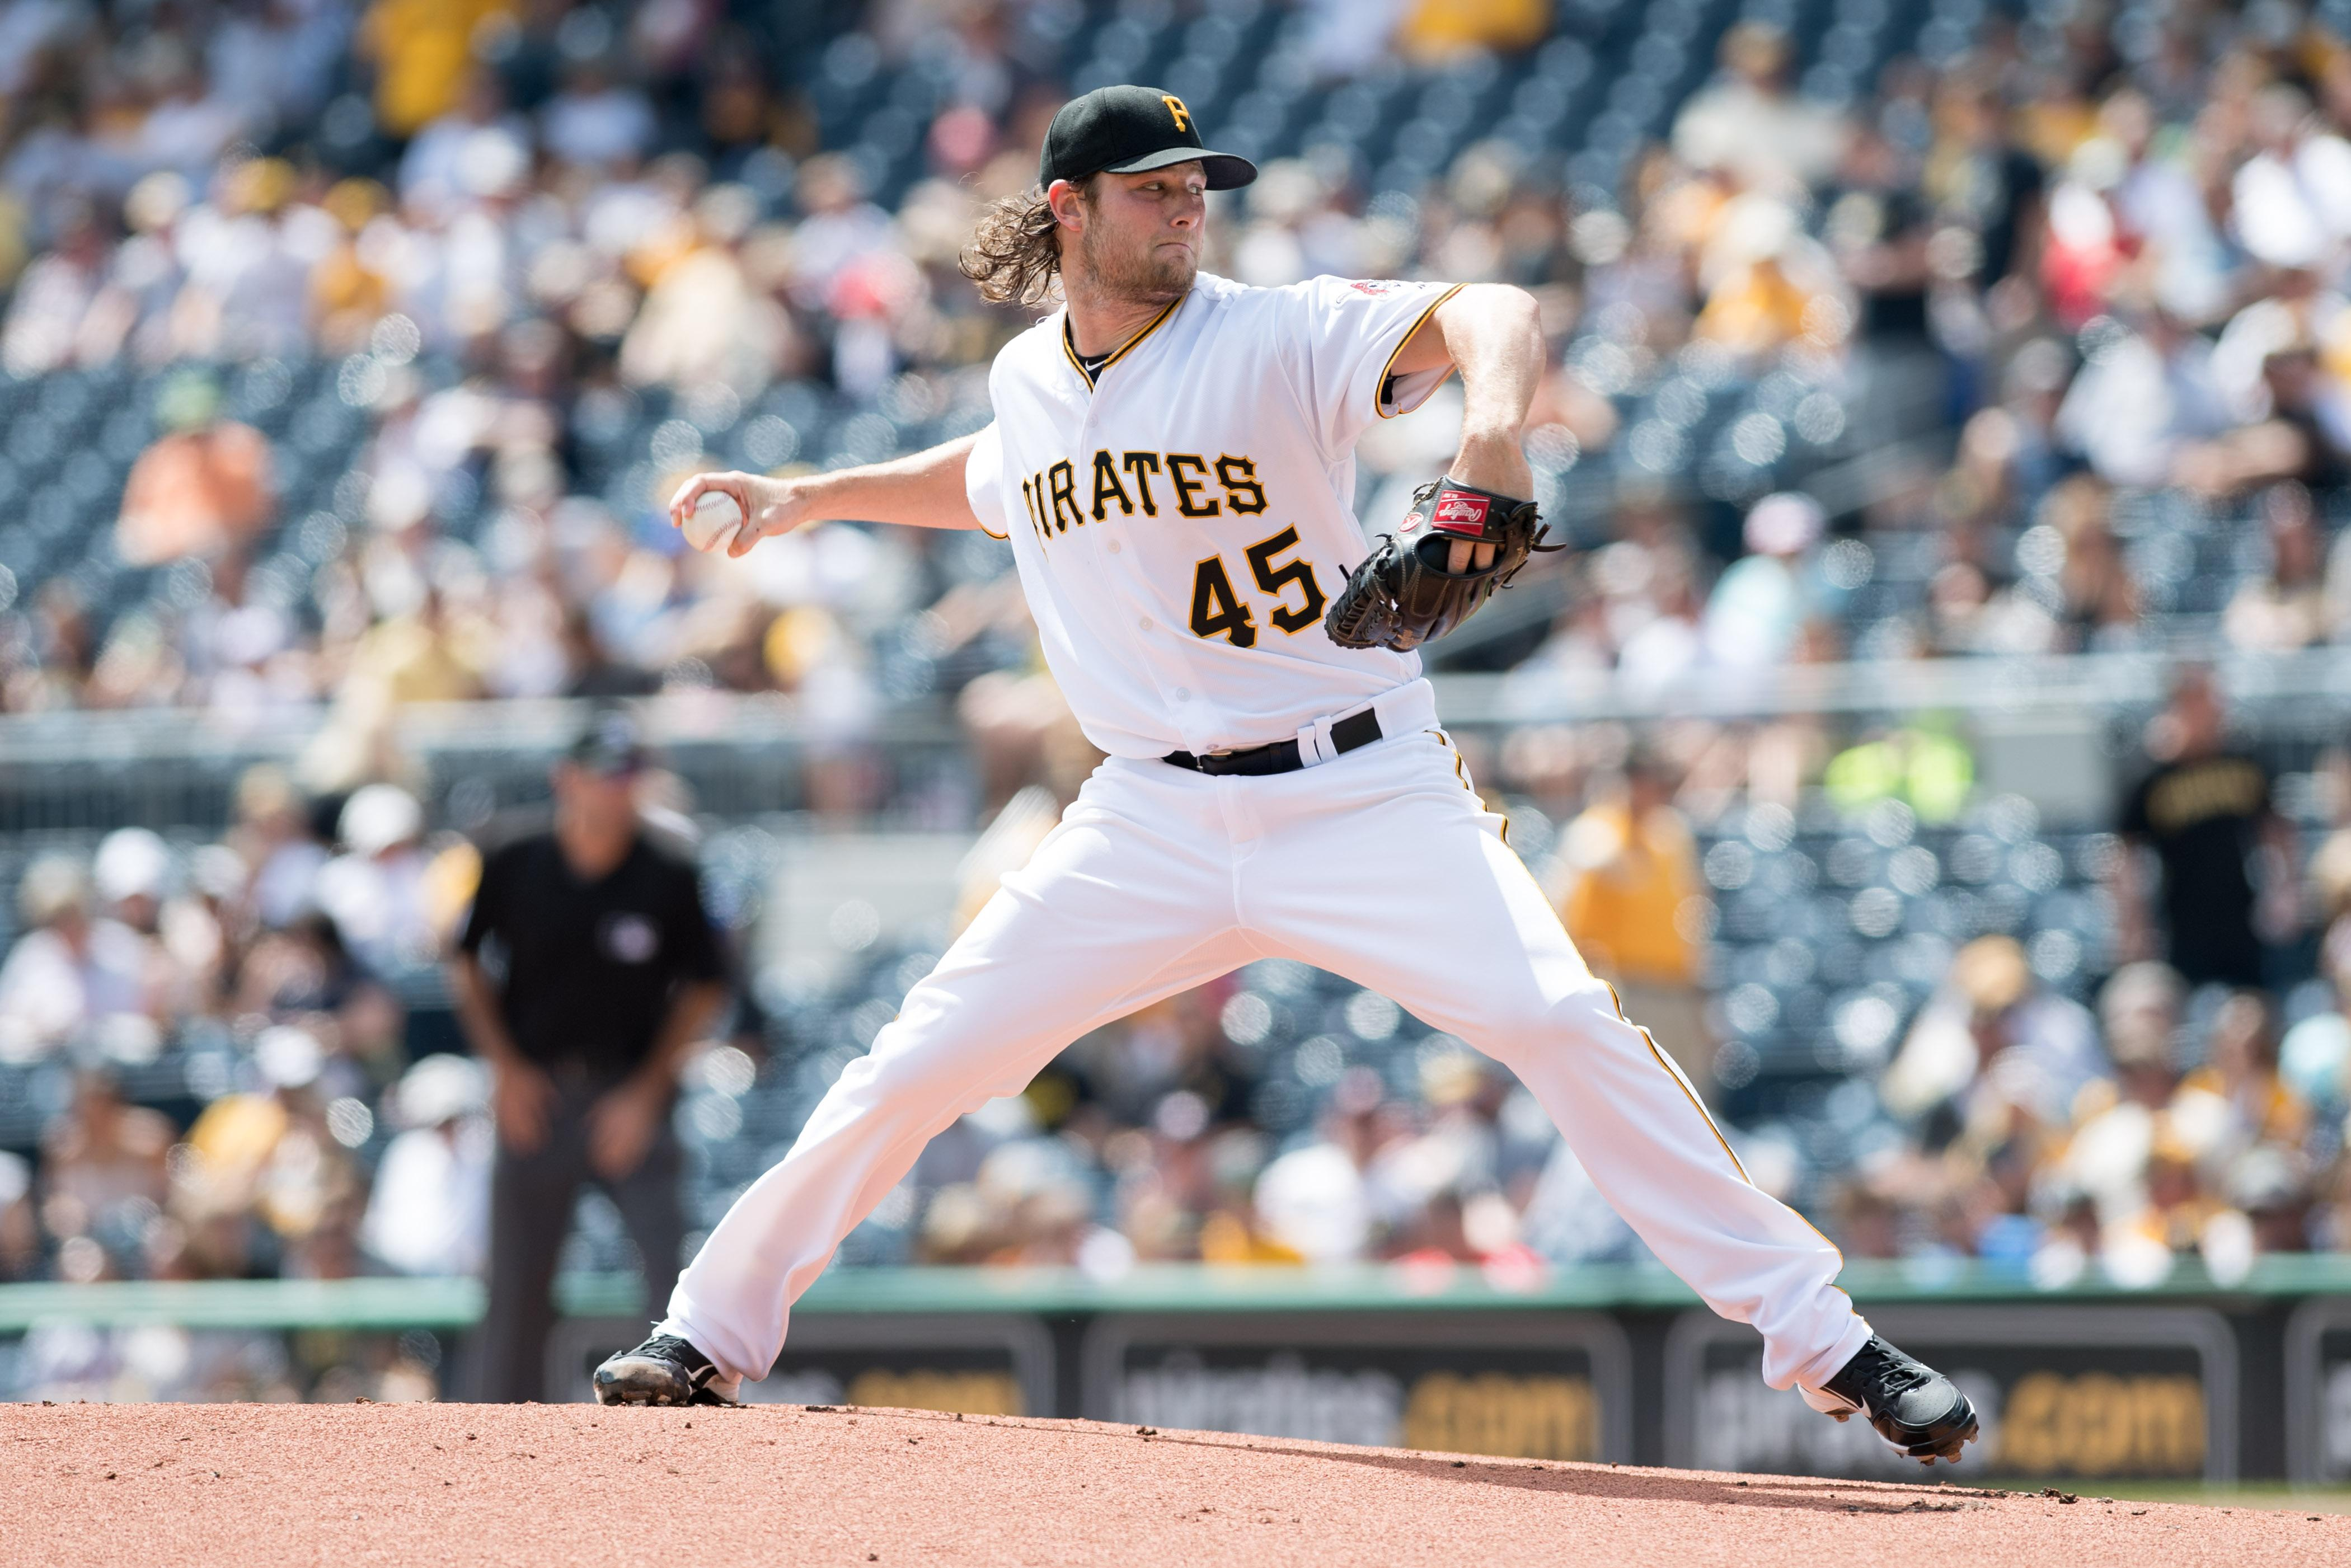 Cubs will benefit from Pirates trading Gerrit Cole to Astros